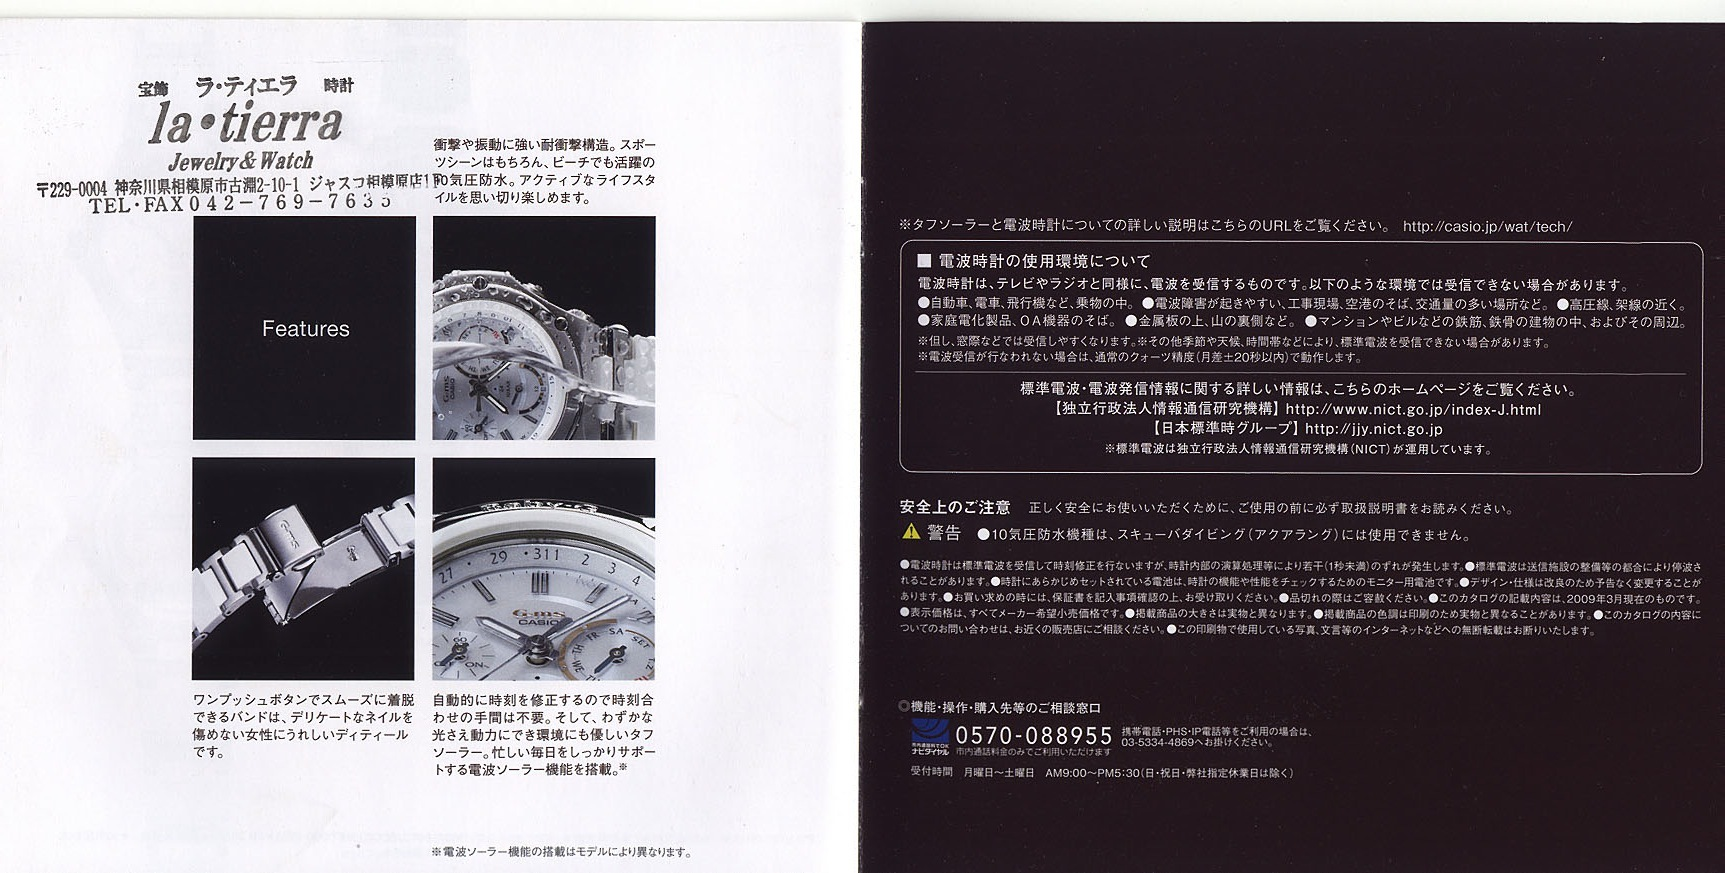 Baby-G-Casio-watches-2009-Catalog-Page-8.jpg